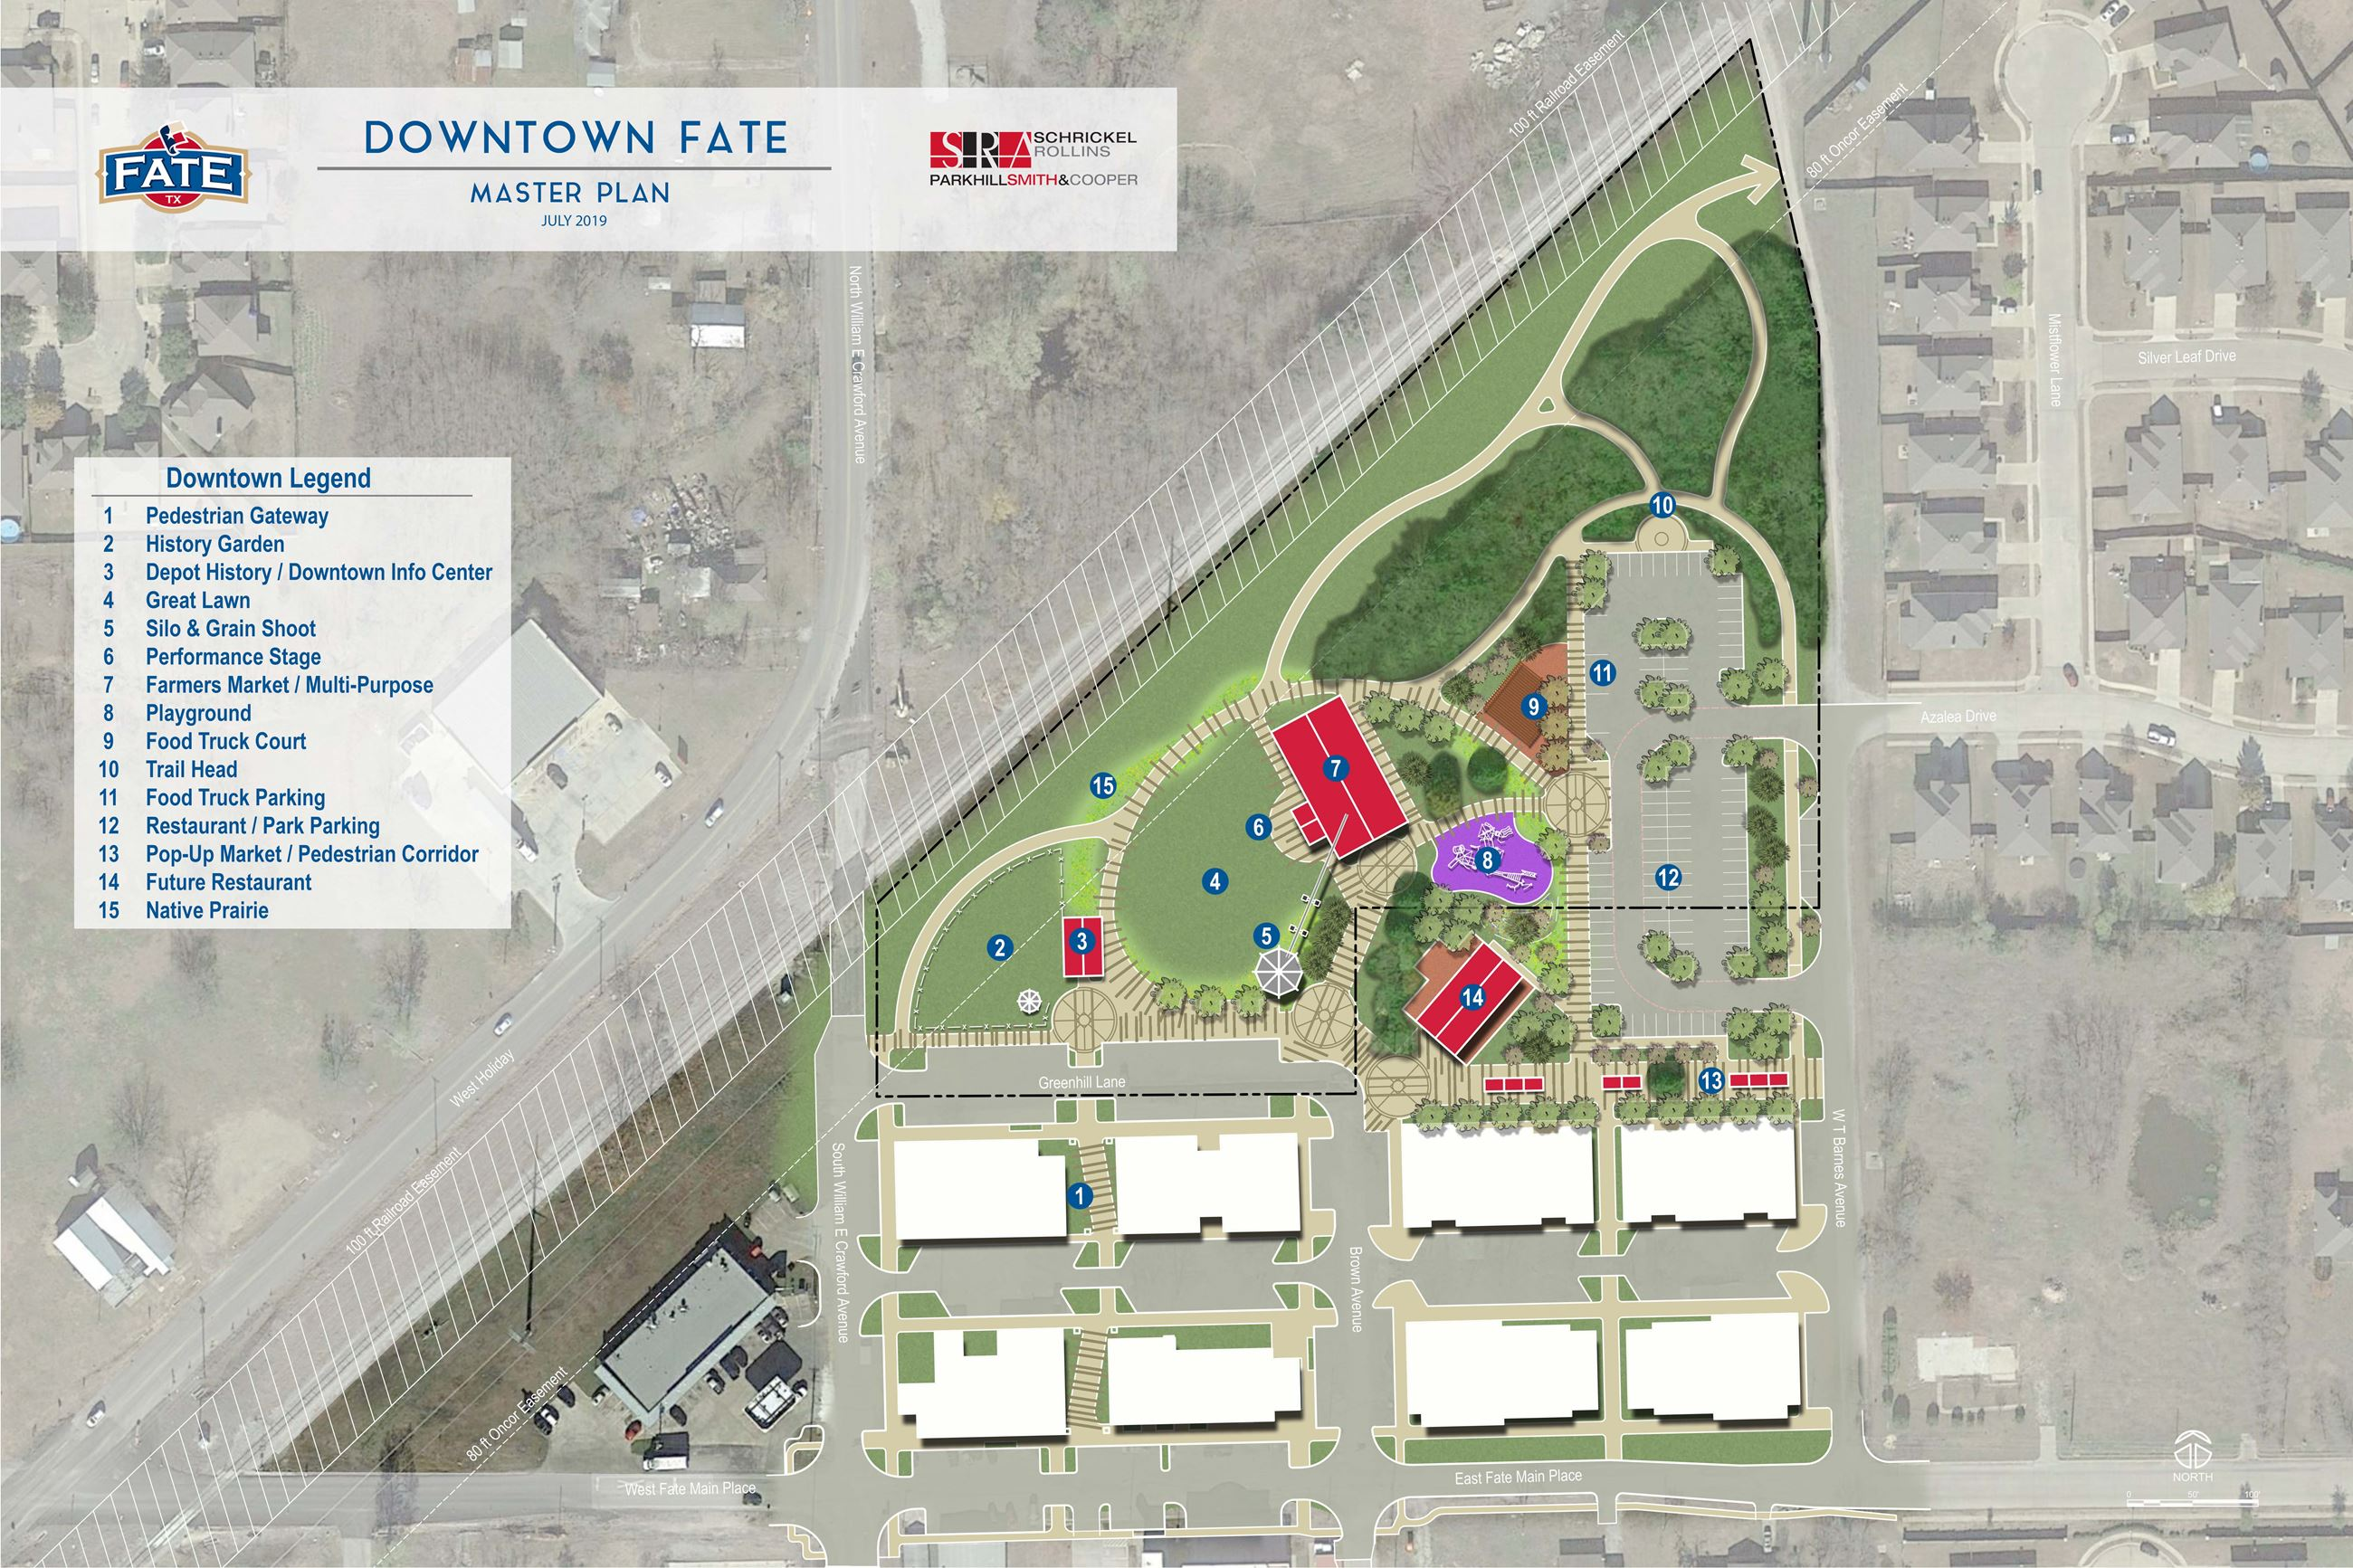 2019-07-25 Downtown Fate Master Plan